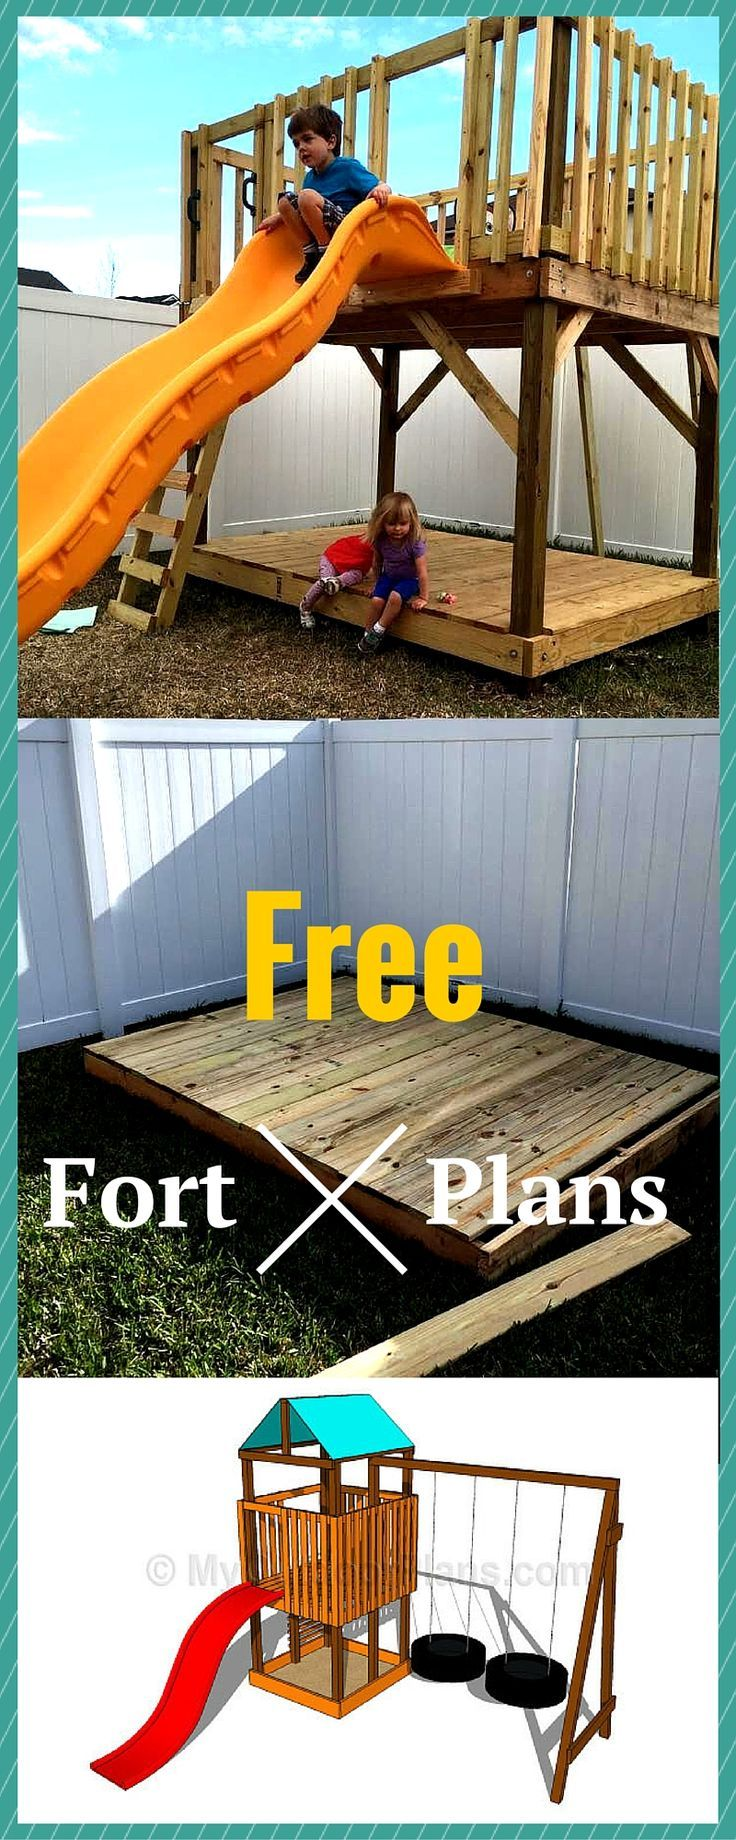 Diy fort plans step by step instructions for you to